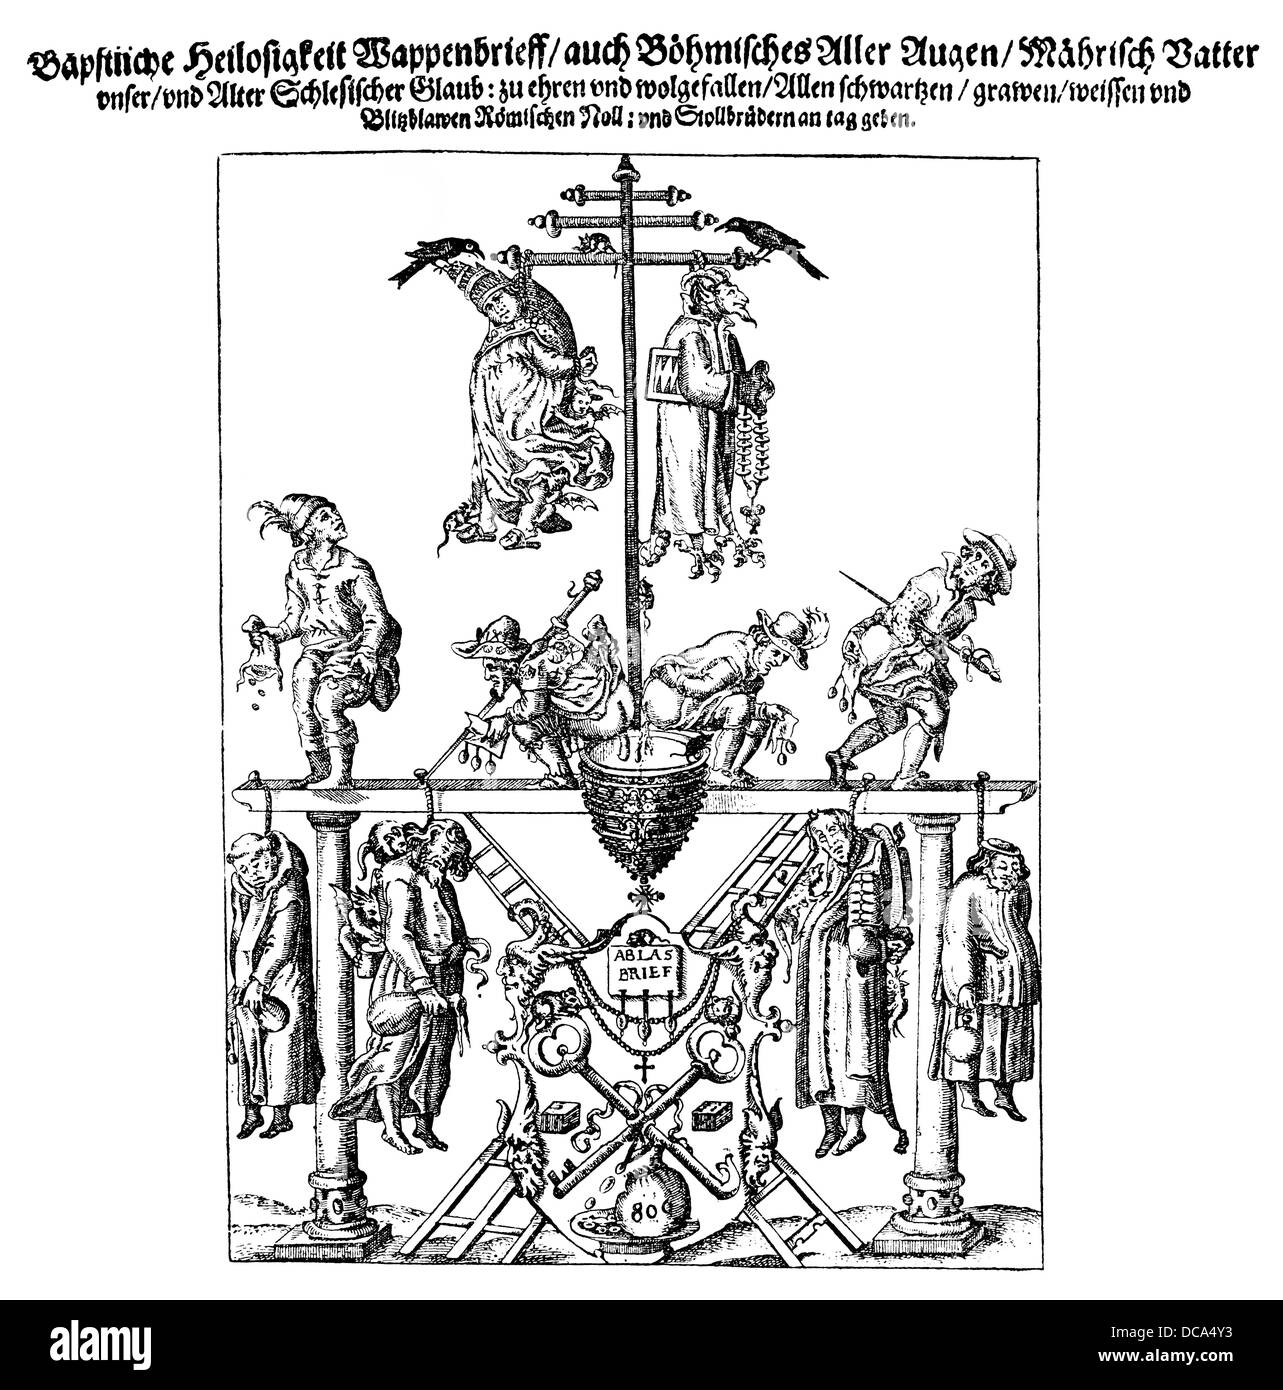 caricature of the Jesuit-controlled Papacy from the 16th Century - Stock Image